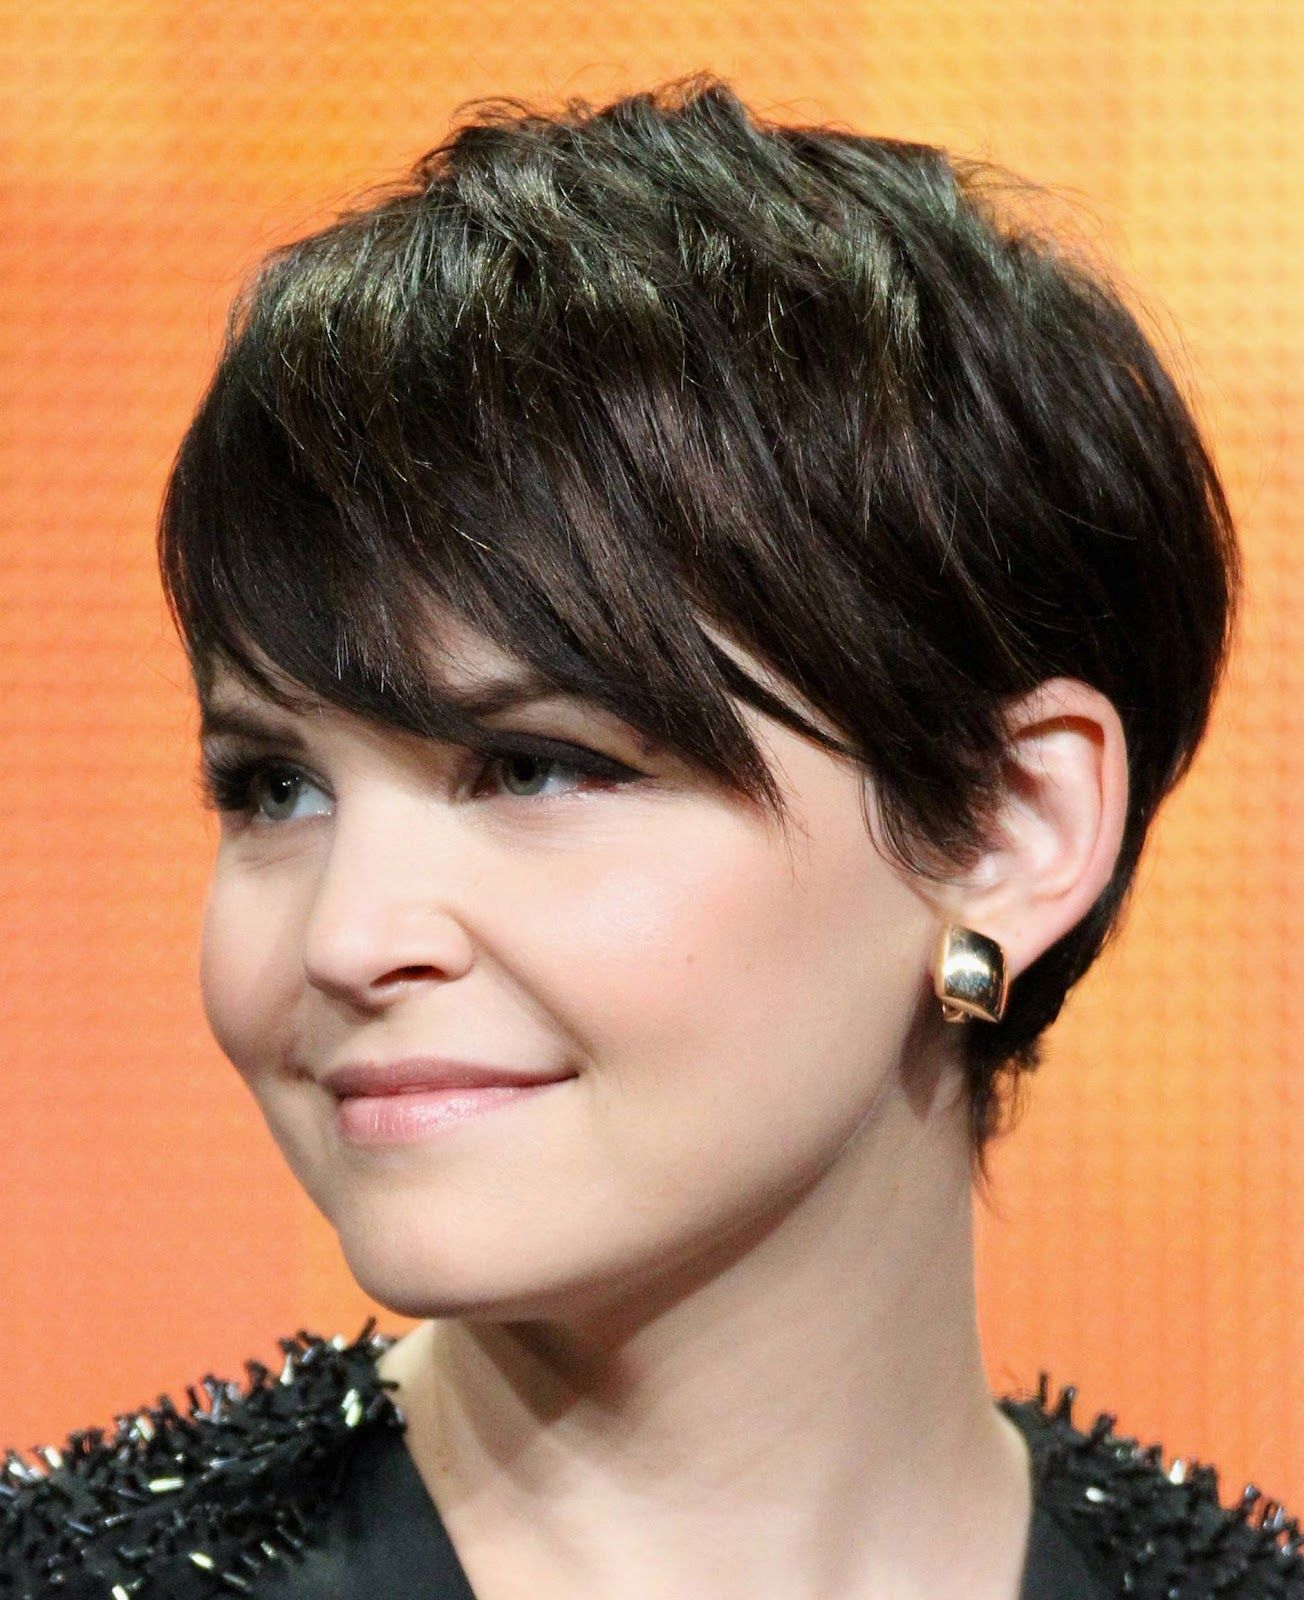 18 Stunning Looks With Pixie Cut For Round Face